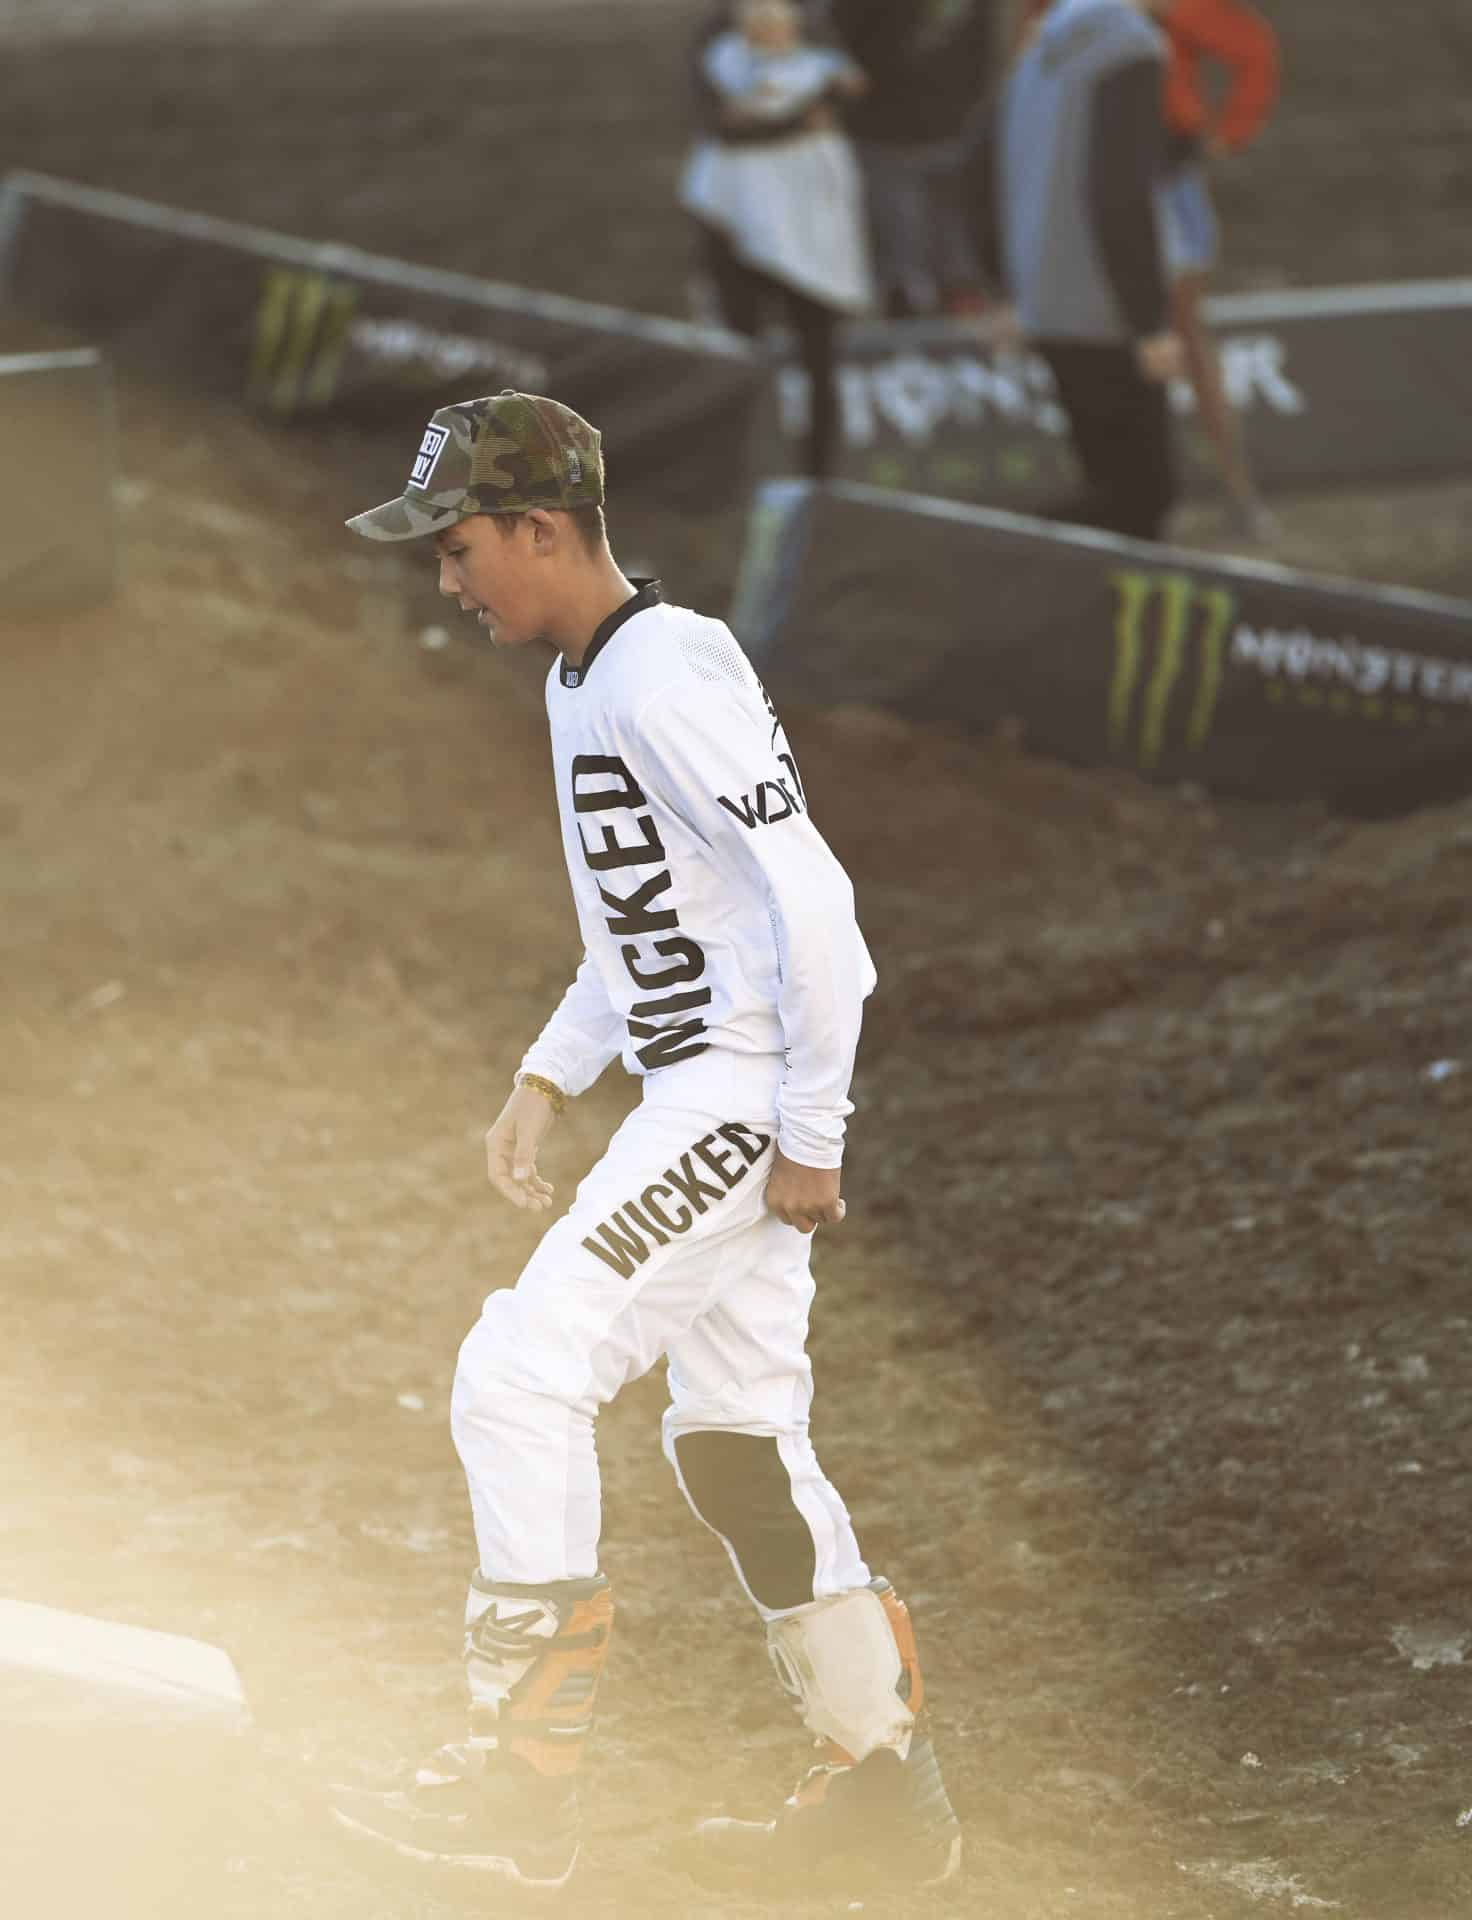 Supercross features